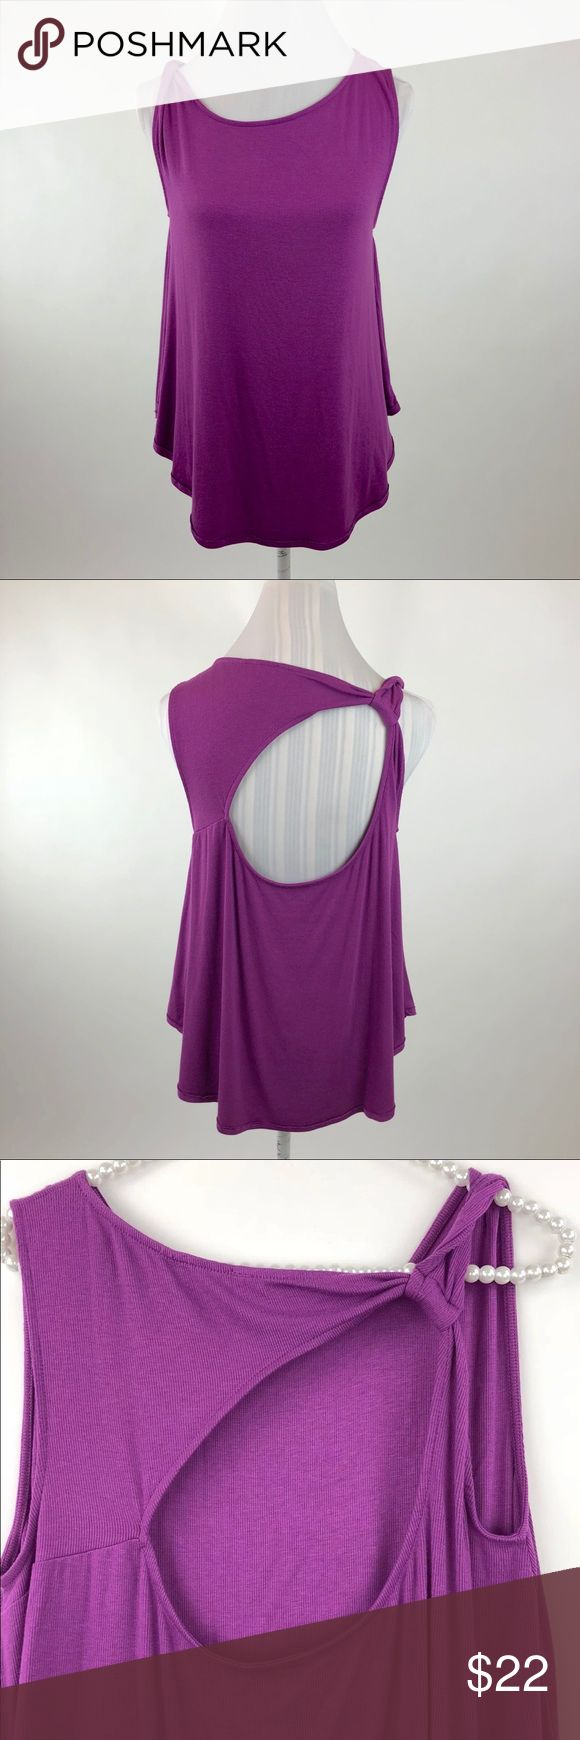 """Free People Purple Cut Out Twist Back Tank Free People Ribbed Cut Out Tank Top in Purple   Women's Size Small  Pit to Pit: 17""""  Length: 25""""  Condition: New without tags. Free People Tops Tank Tops"""